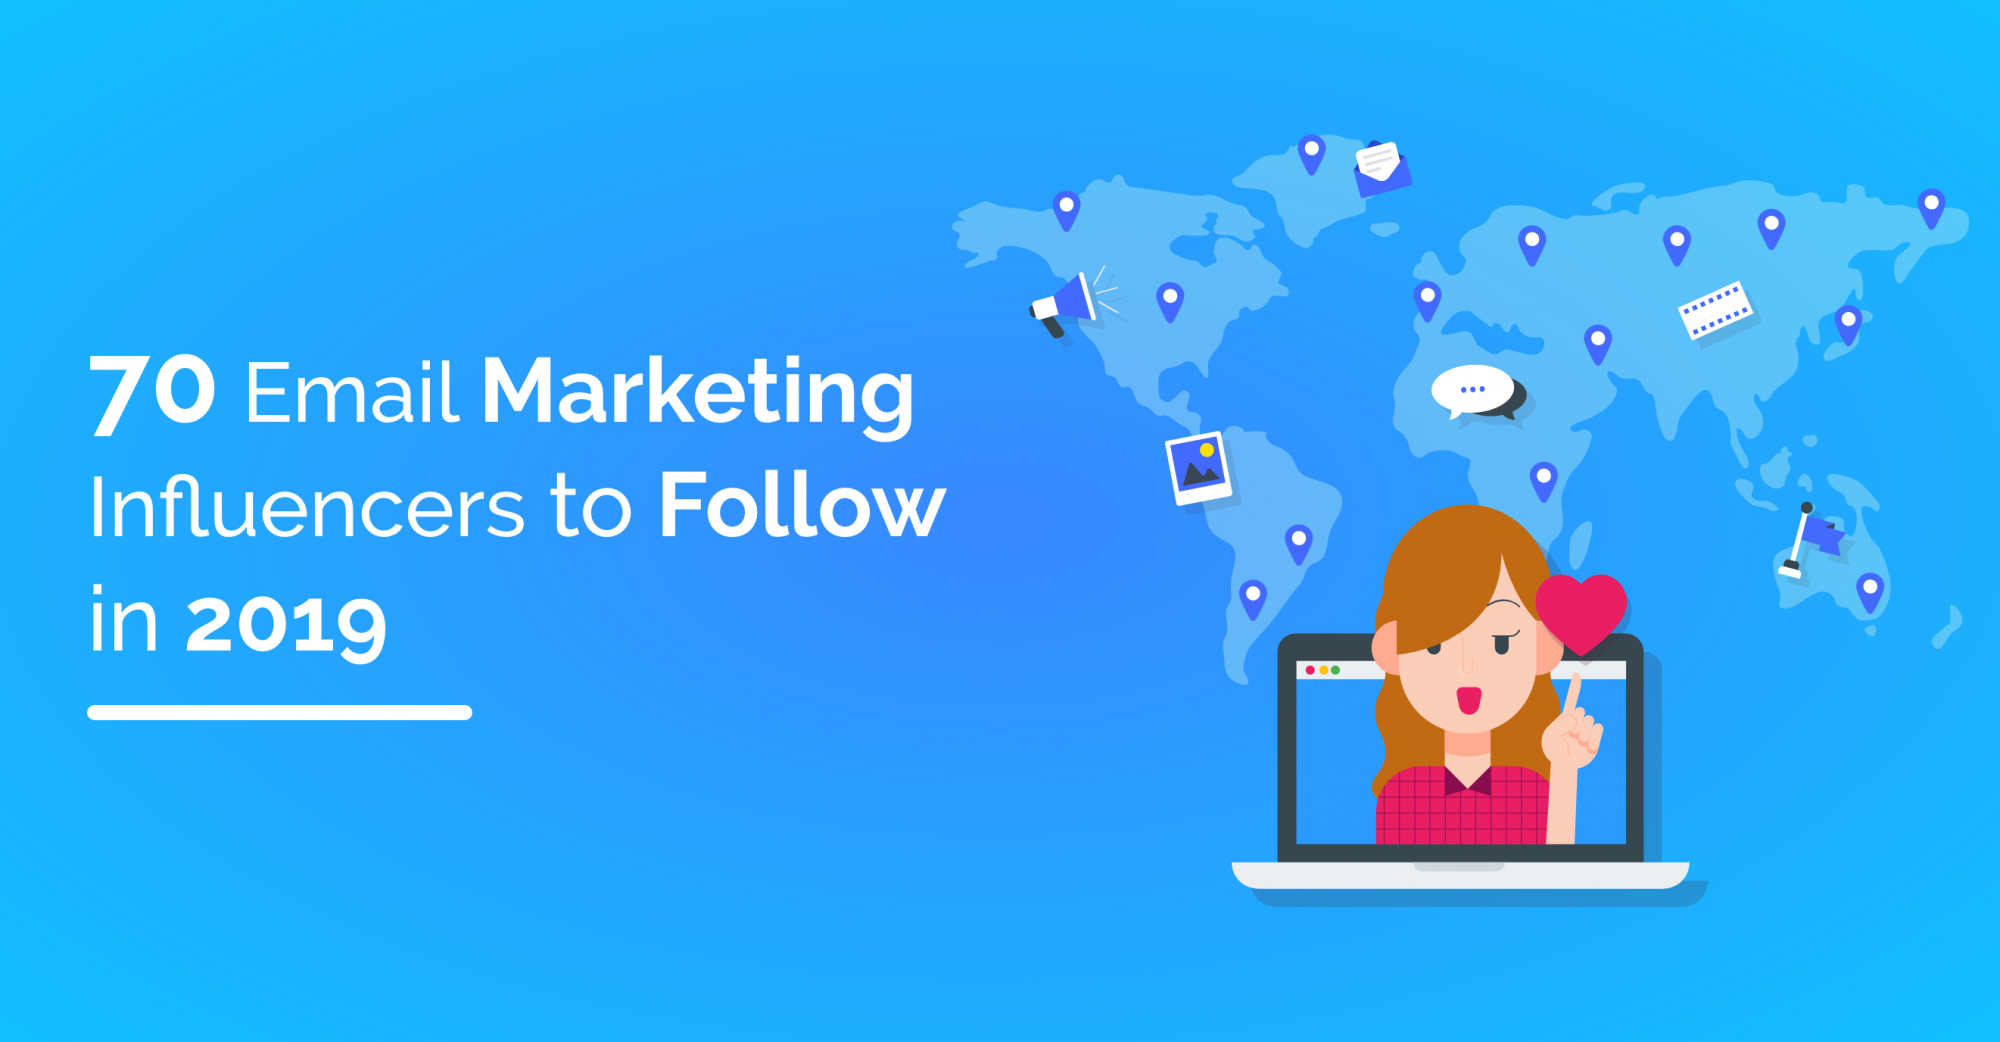 70 Email Marketing Influencers to follow in 2019- ContentStudio